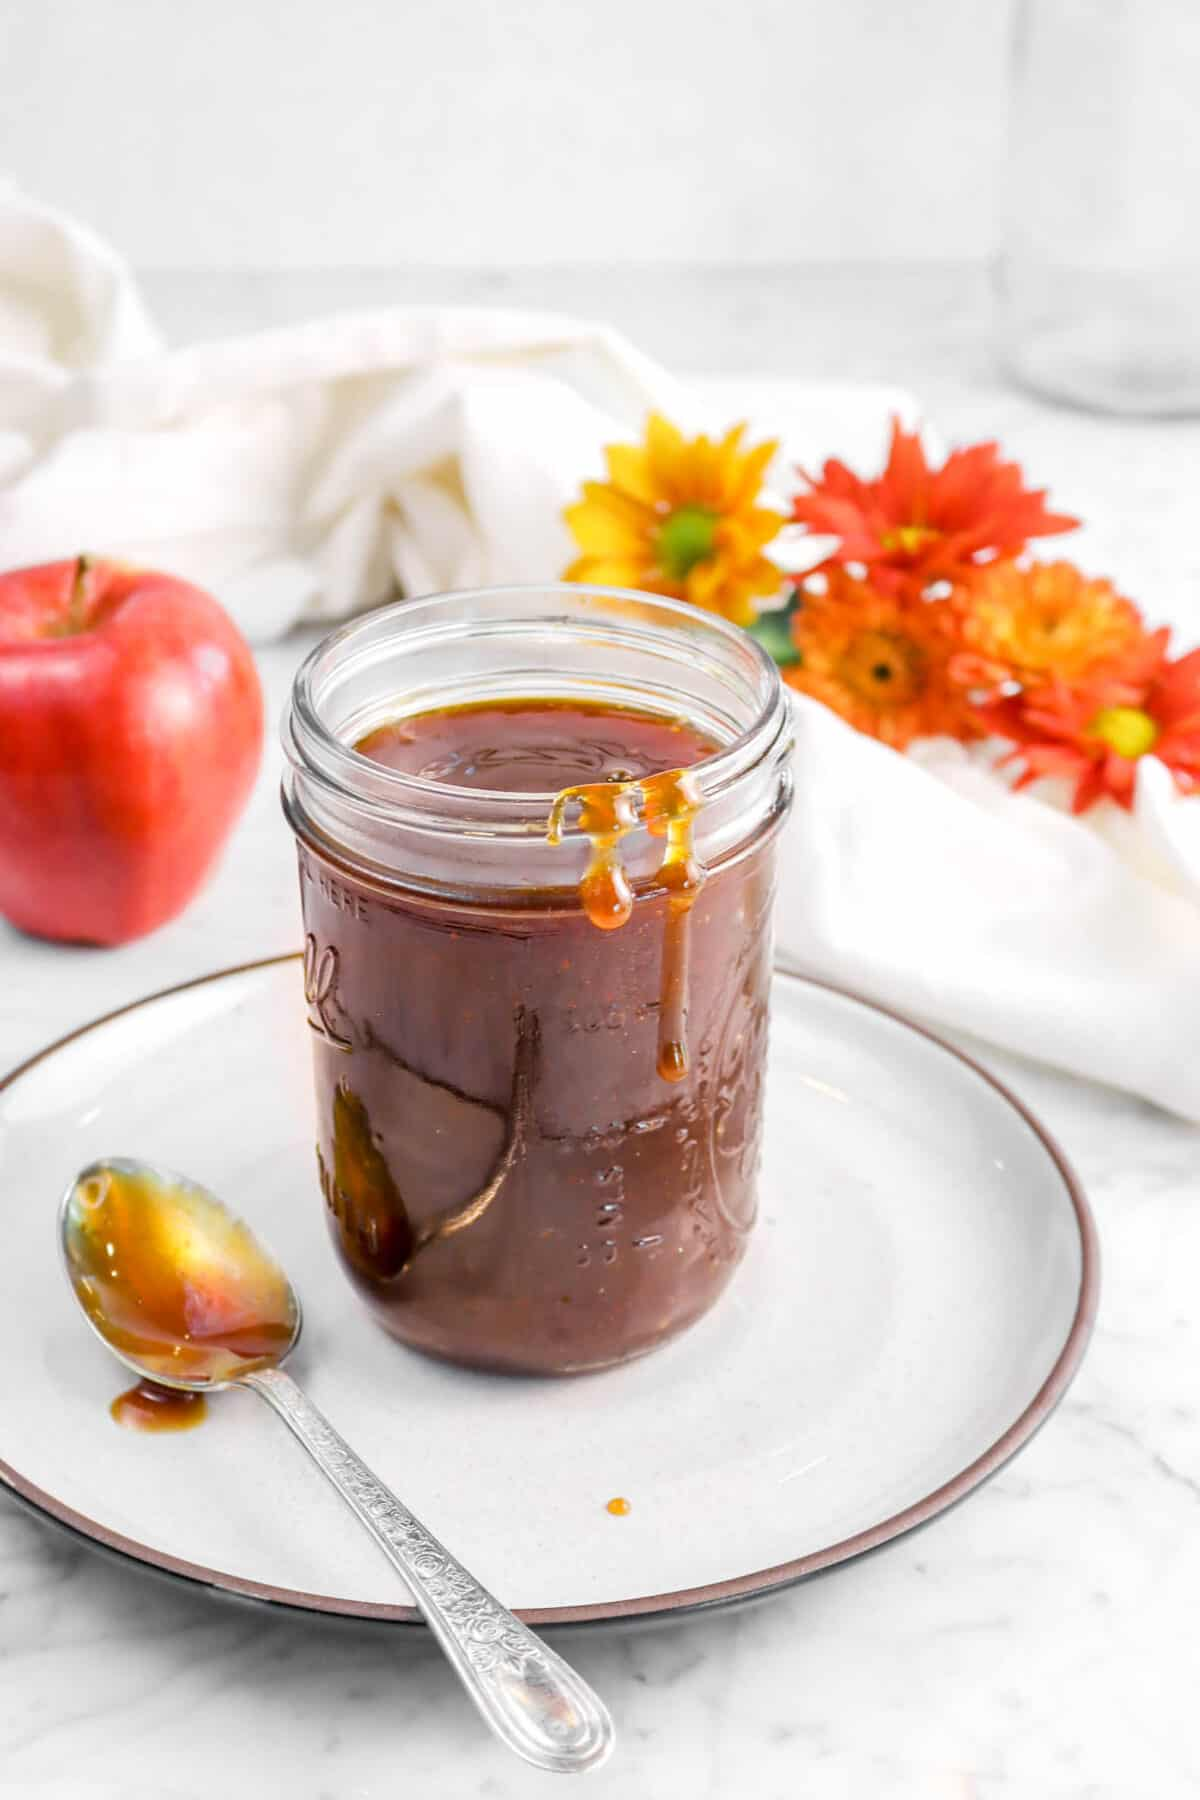 boiled cider in a jar with flowers and an apple behind